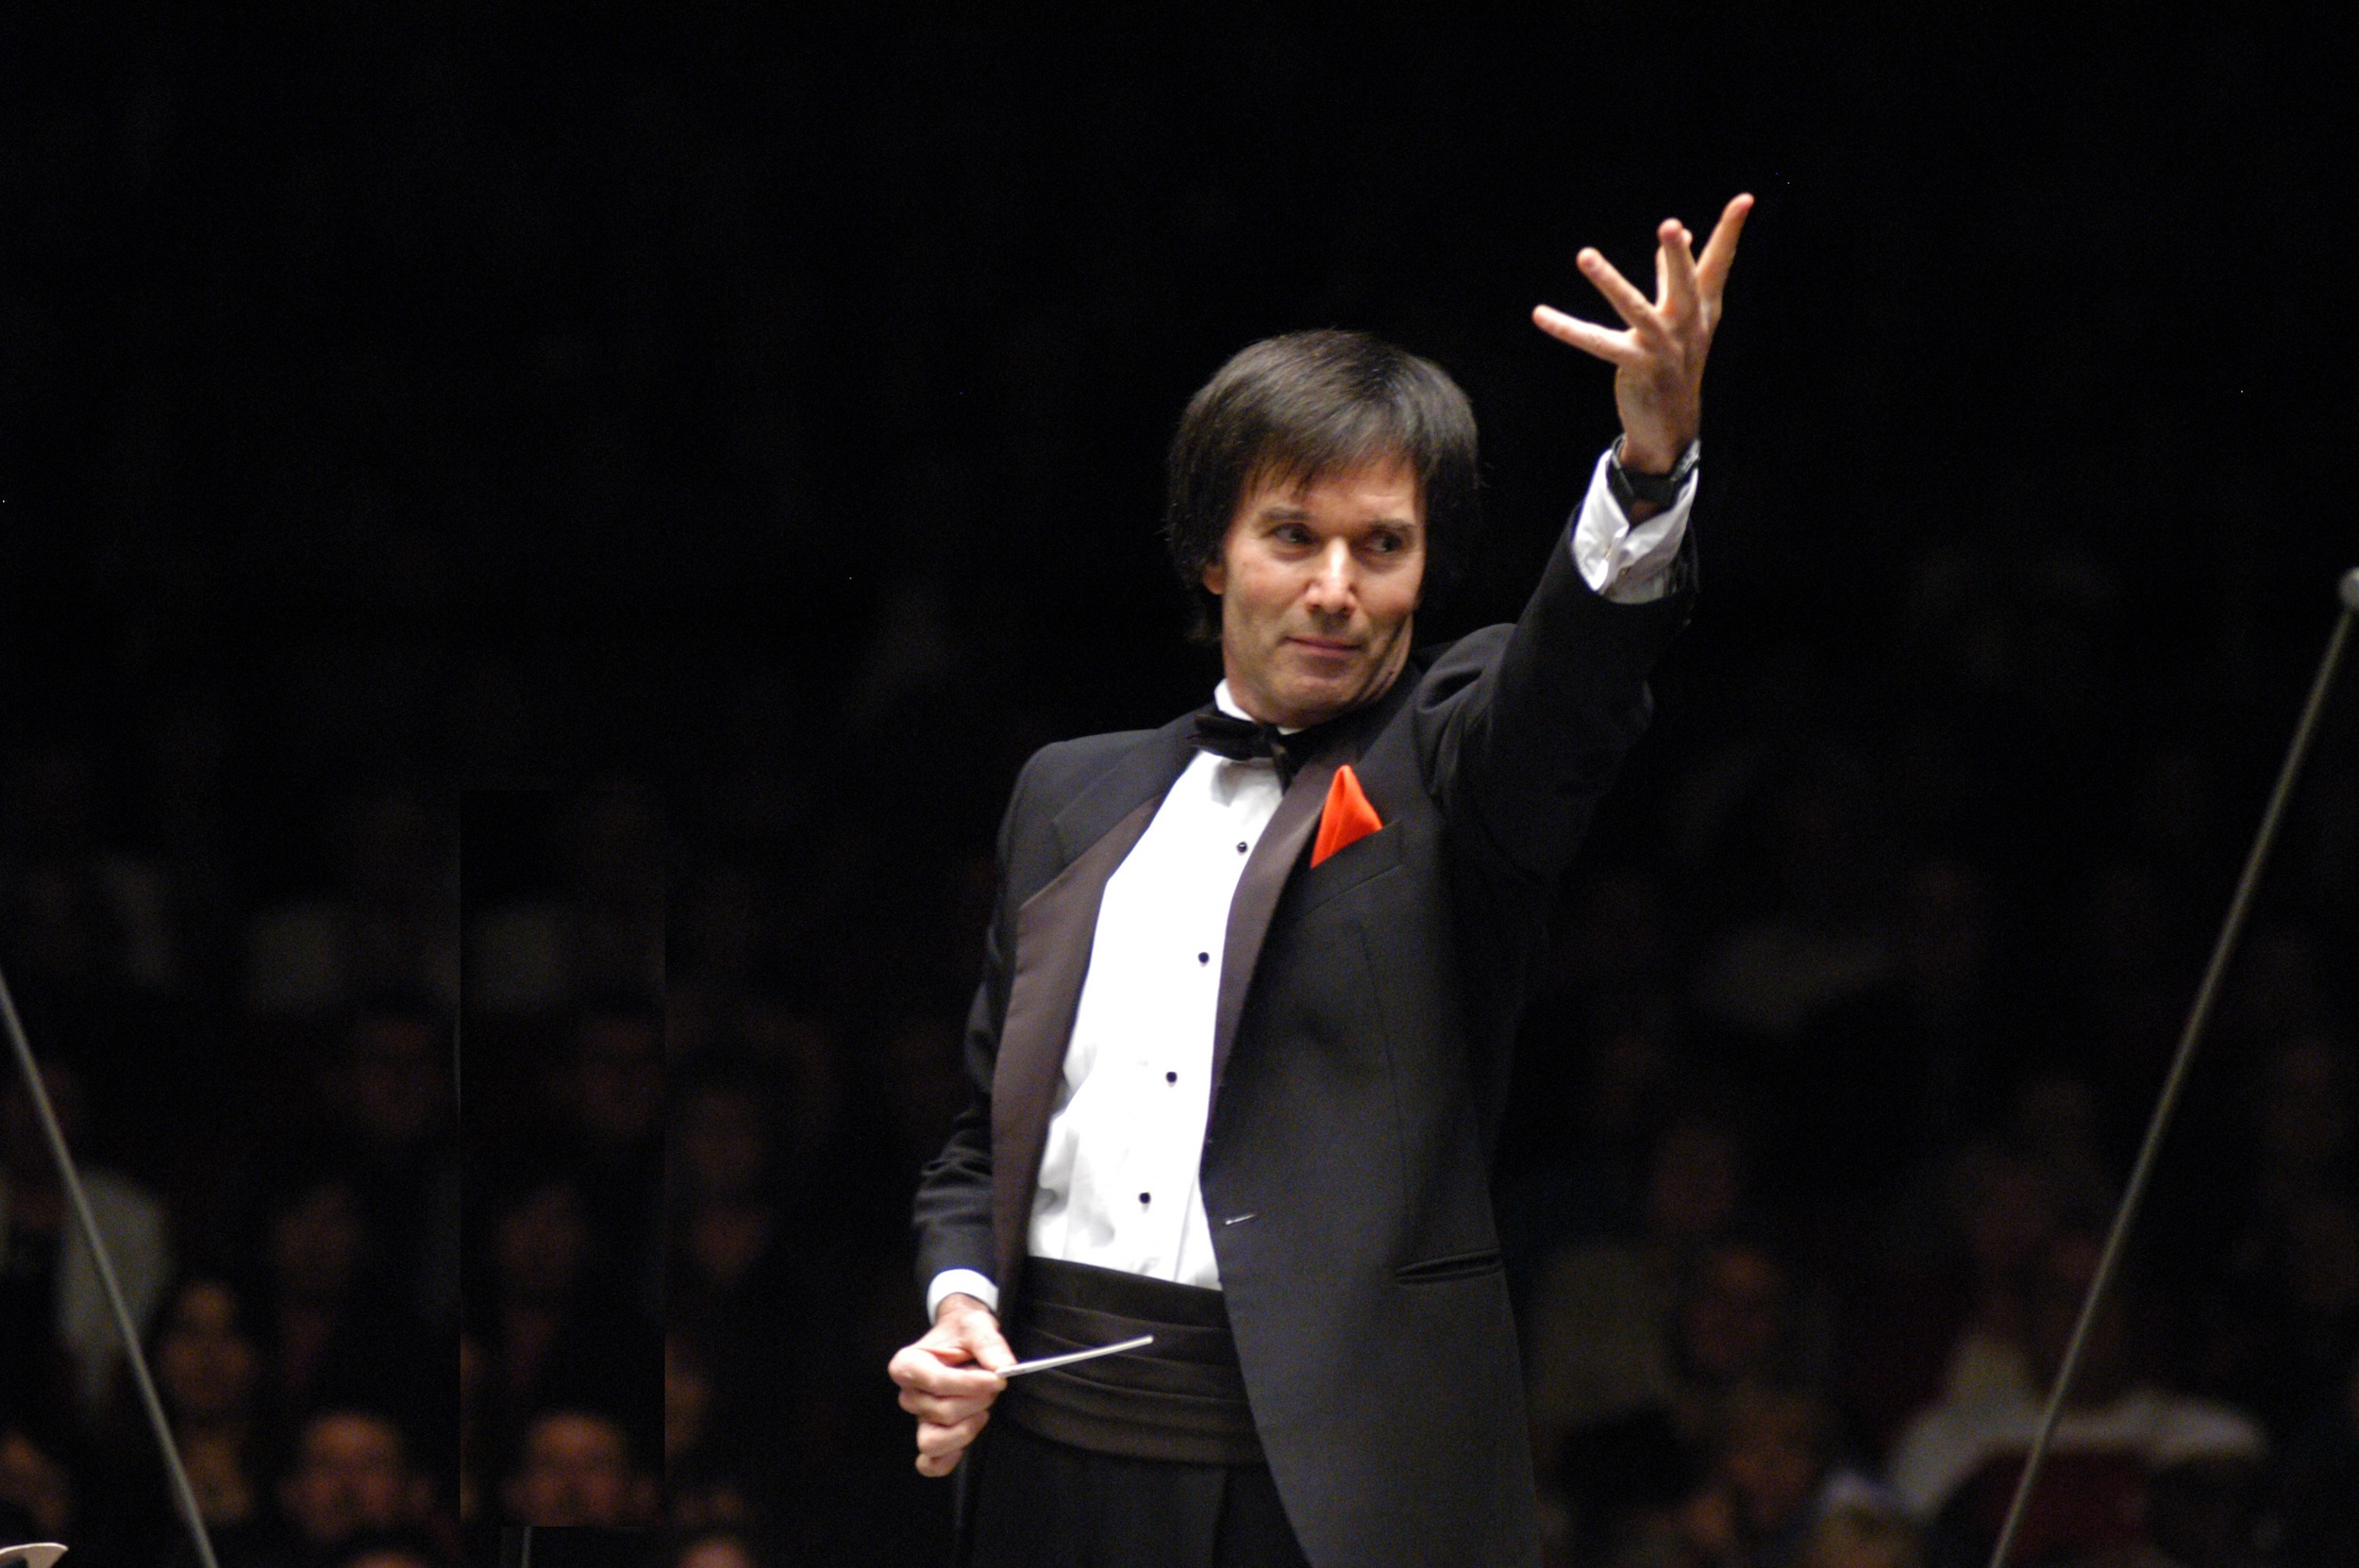 Founder-Conductor Gary S. Greene conducting